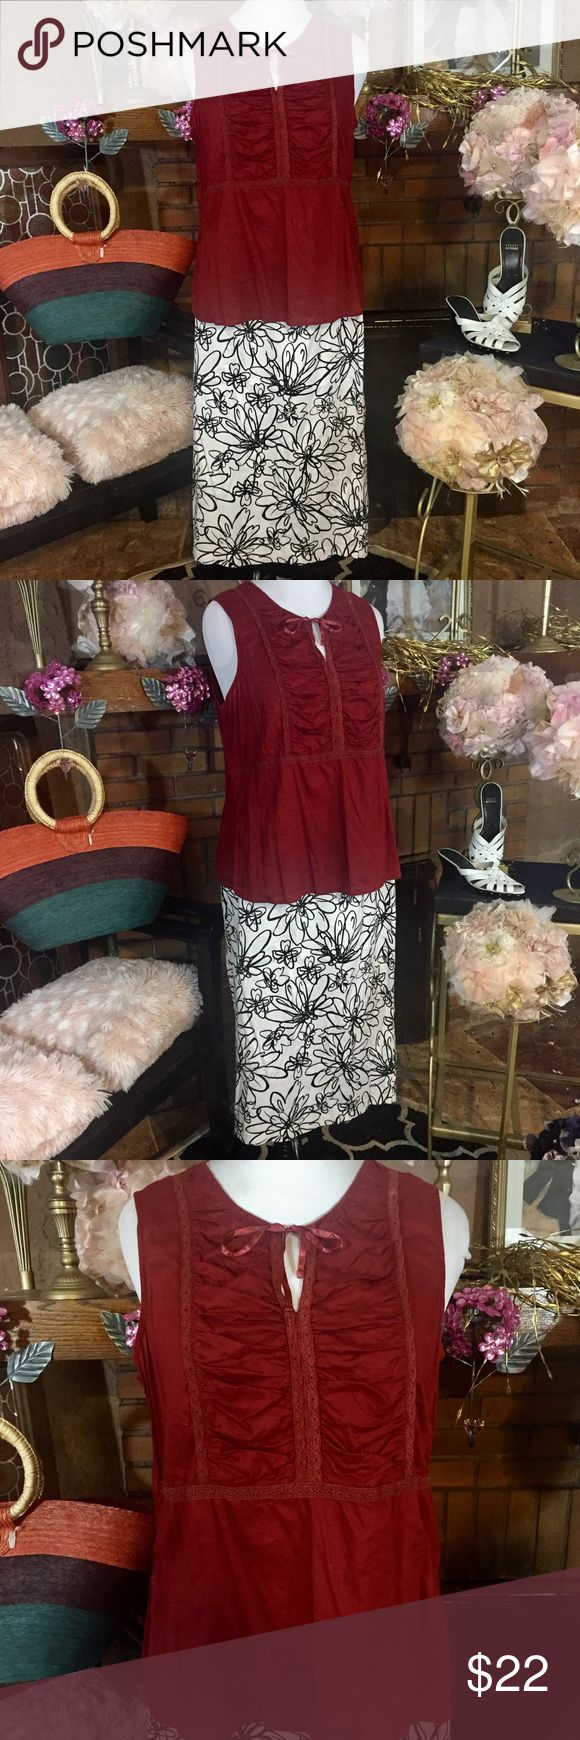 Cato Woman skirt; Venezia tunic Cato Woman black and white midi skirt with ruffle detail on back size 16. Approx measurements are 38 inch waist and 30 inches long. Venezia brick red tunic size 14/16. Approx measurements are 14/16. Outfit priced as a whole but can separate. $10 for top and $12 for skirt. Shoes and purse are for sale in another listing while available. Cato Skirts Midi